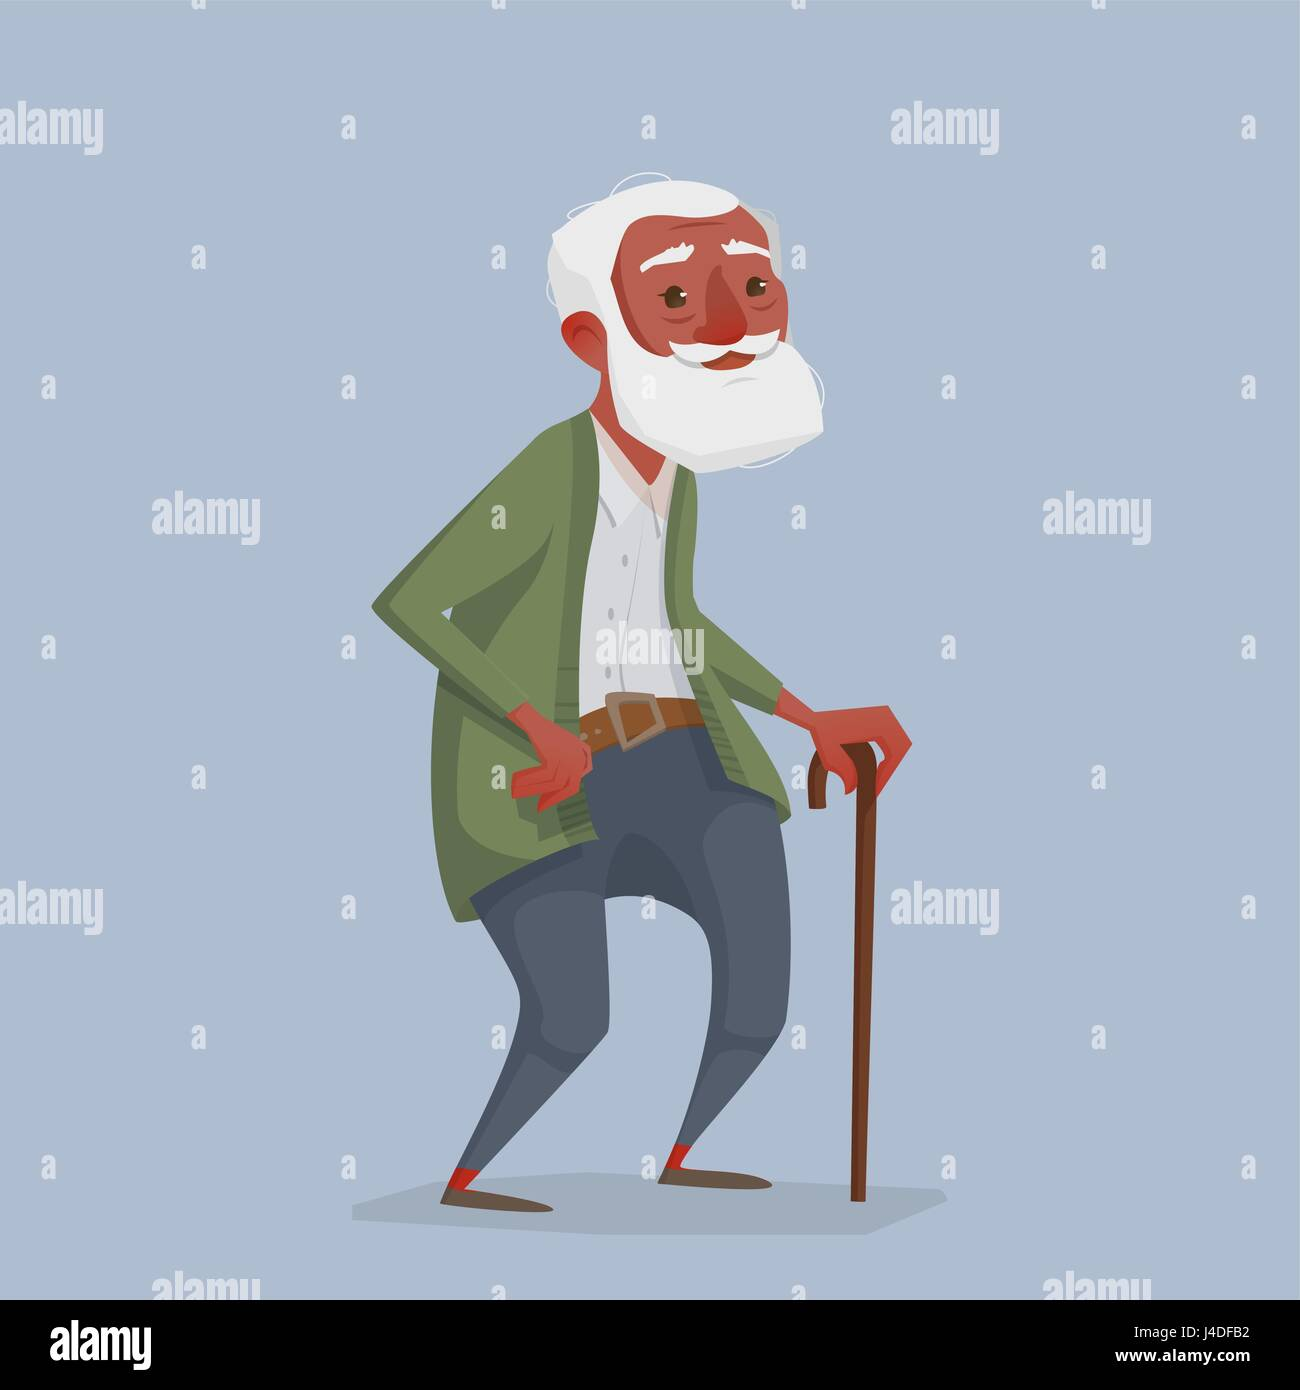 an old african man with a beard and a cane. a cartoon character is